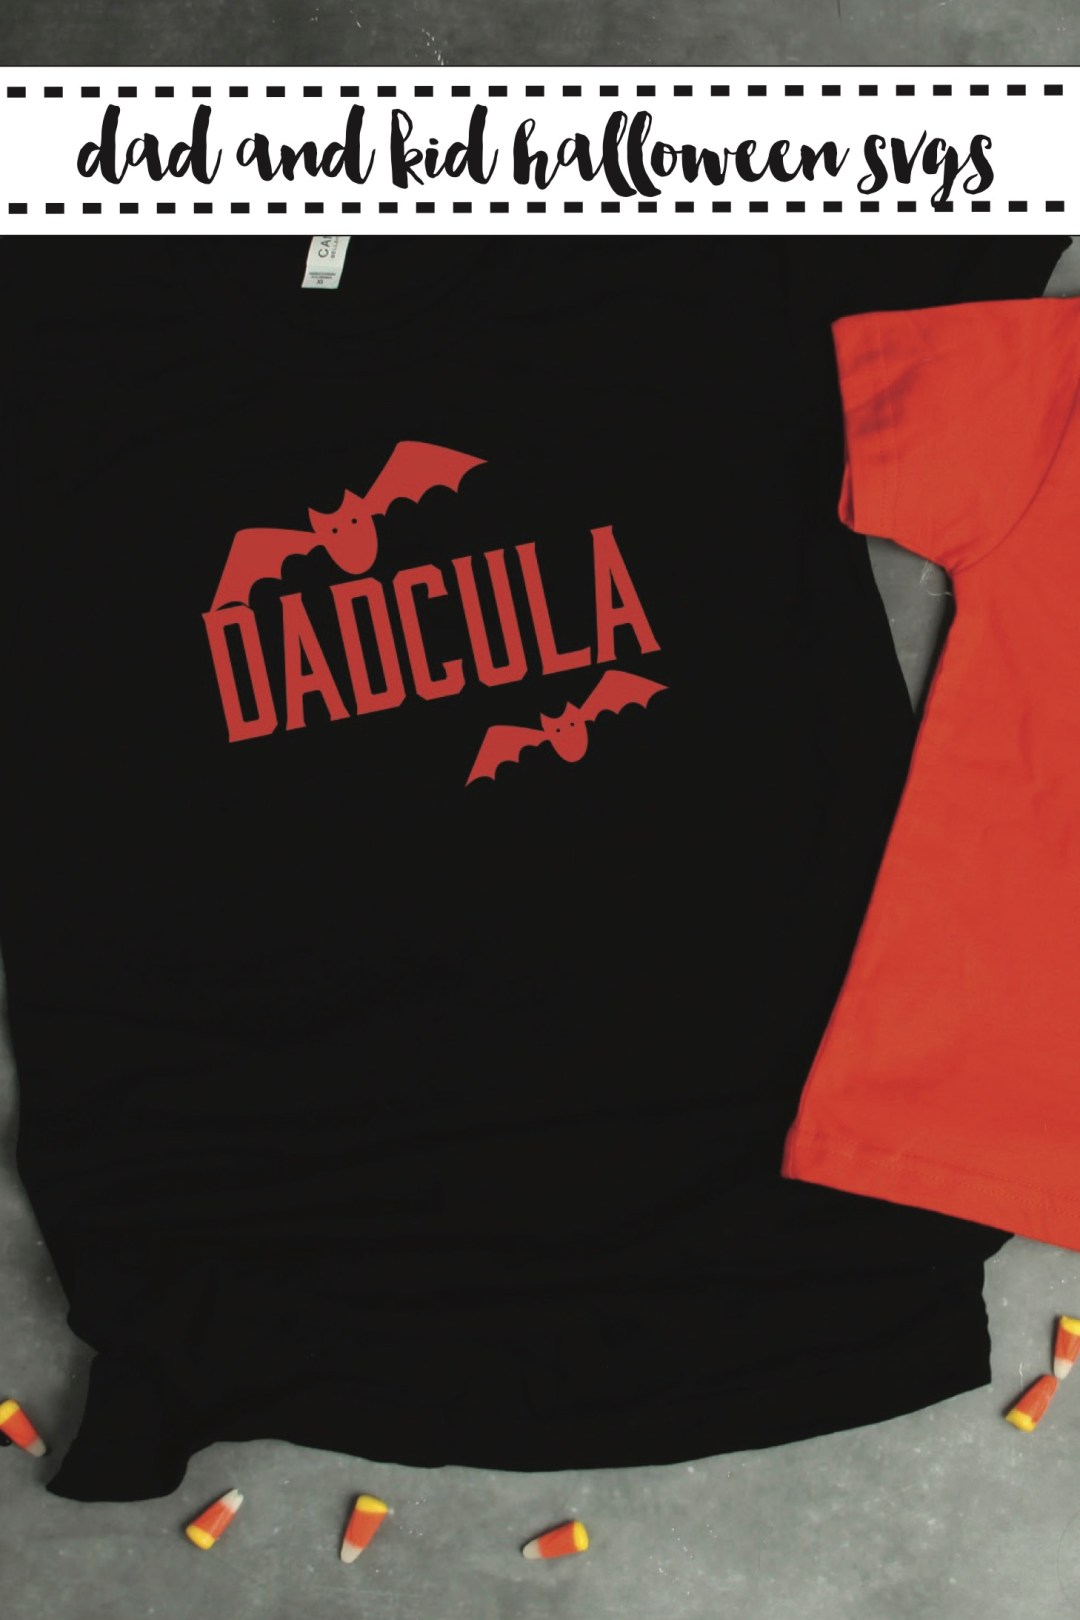 Father and Child Halloween Shirts